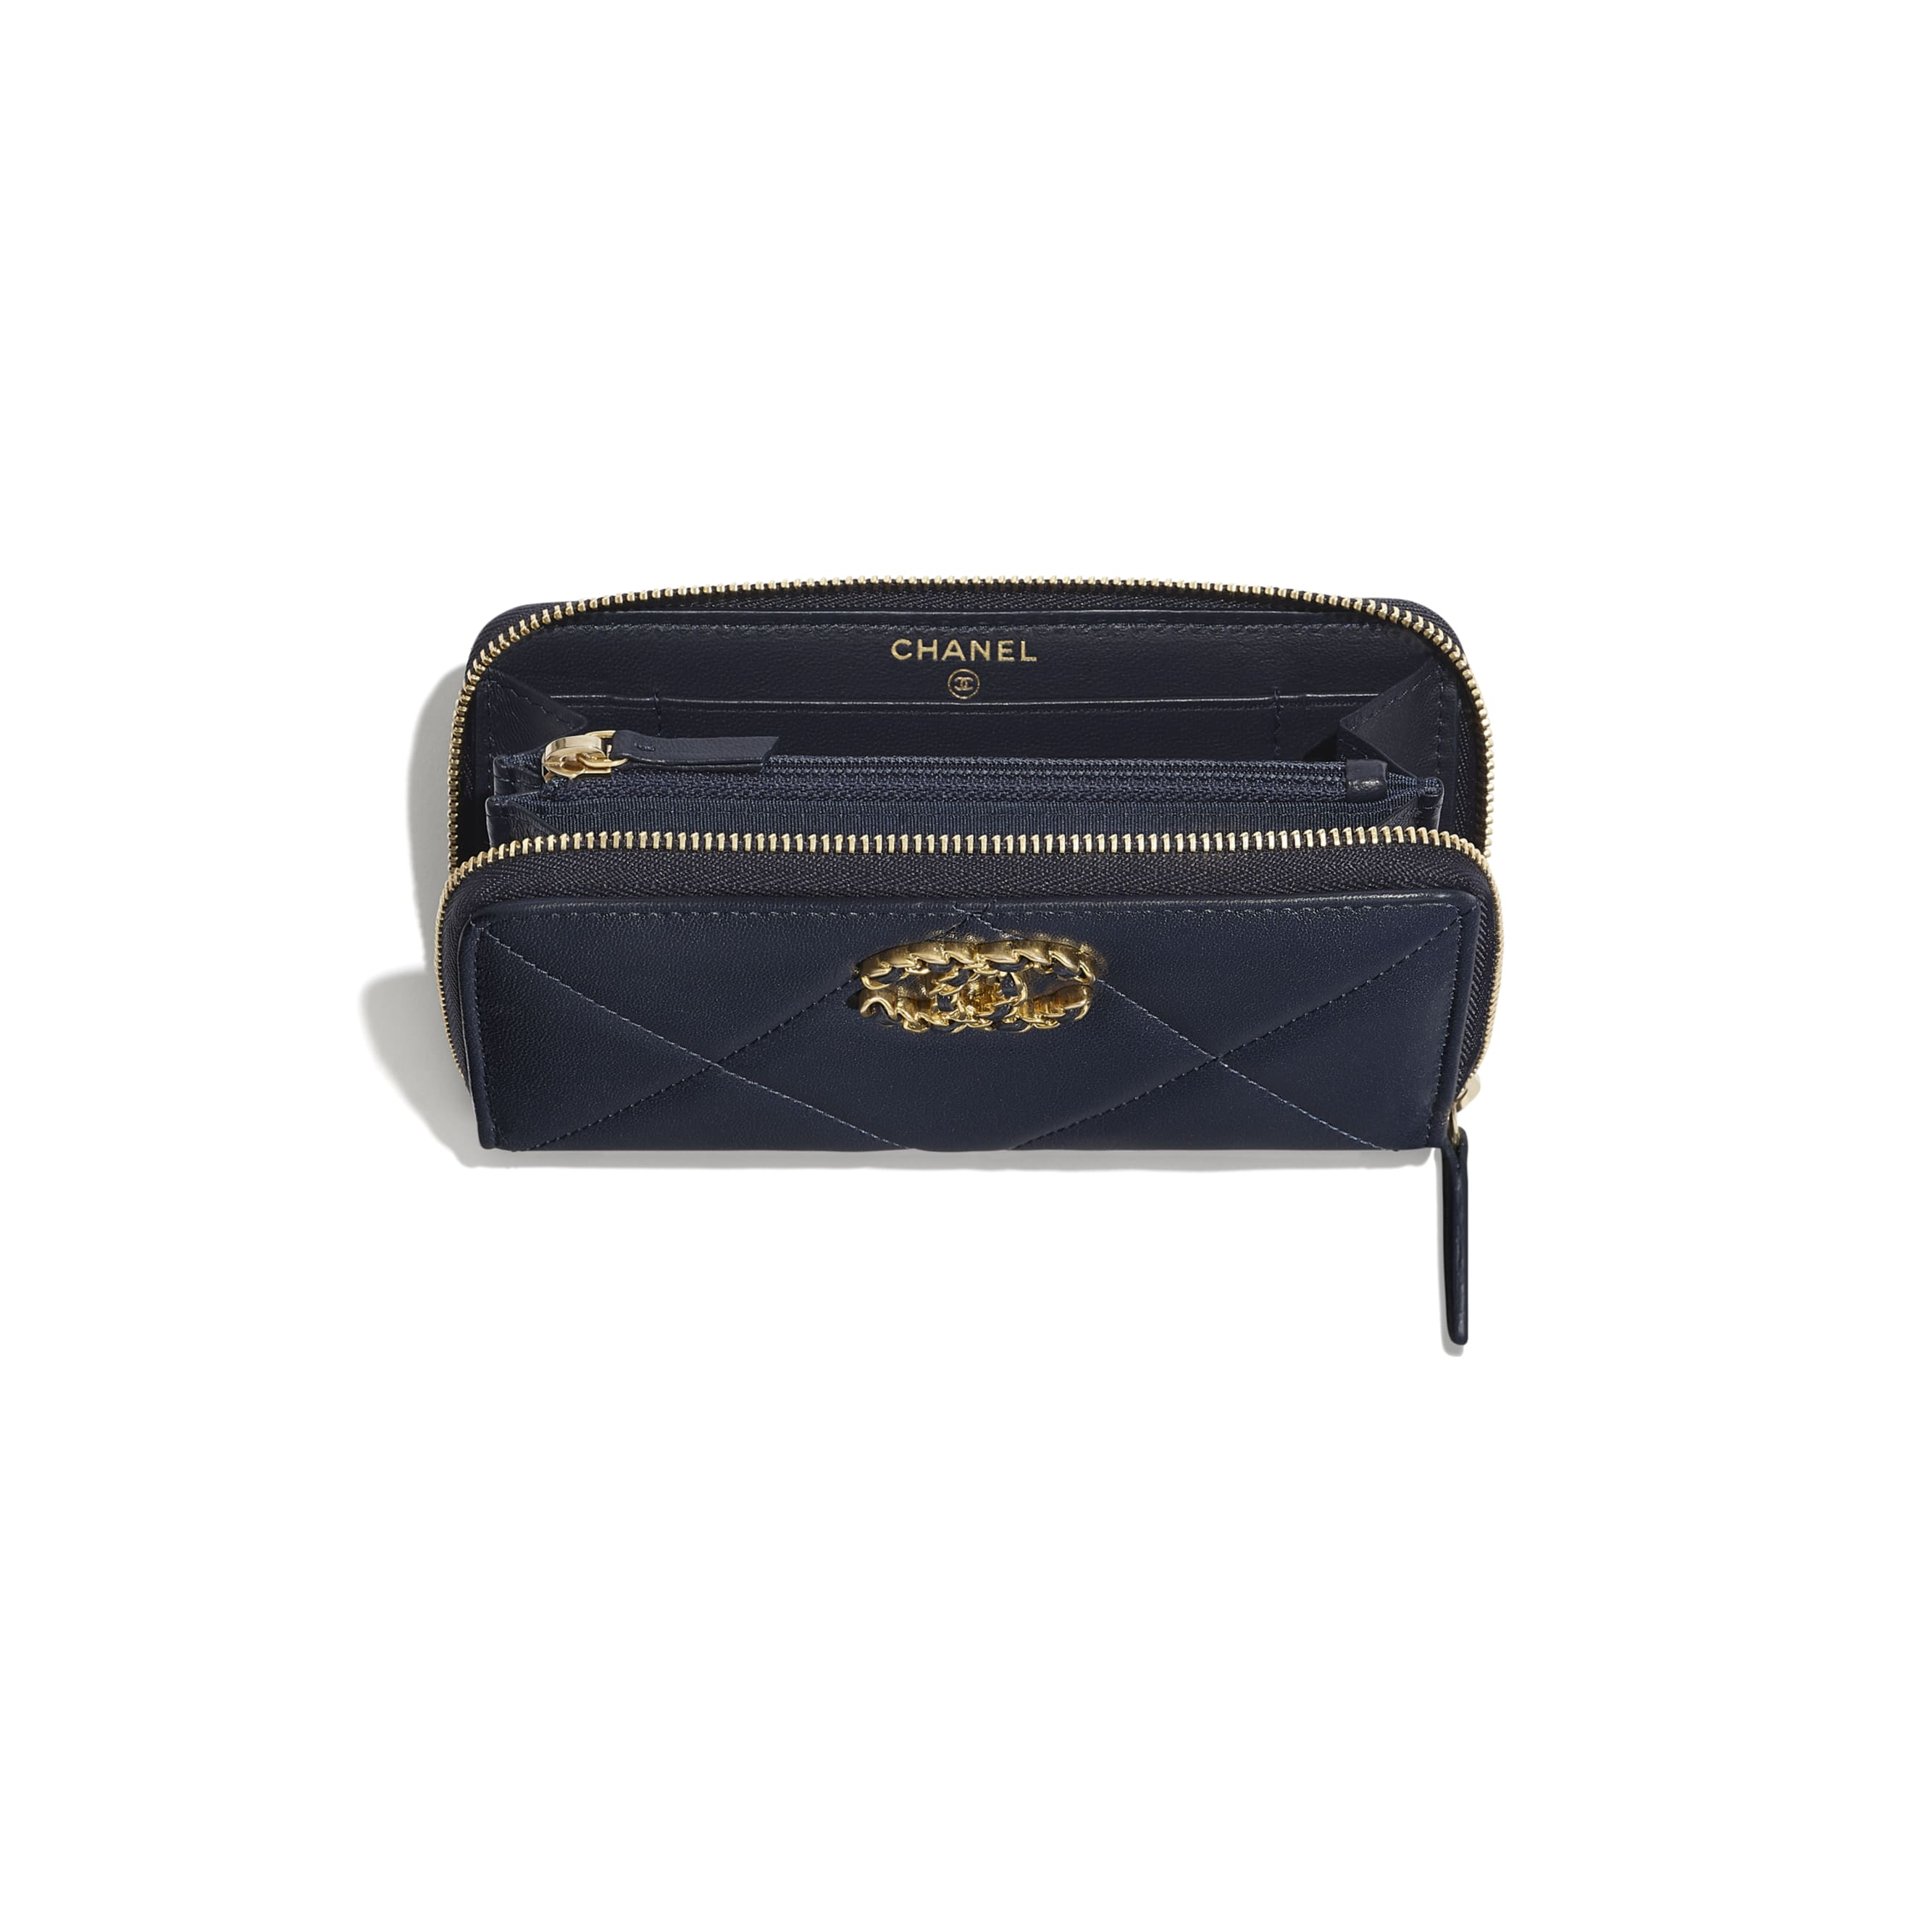 CHANEL 19 Zipped Wallet - Navy Blue - Lambskin, Gold-Tone, Silver-Tone & Ruthenium-Finish Metal - CHANEL - Other view - see standard sized version